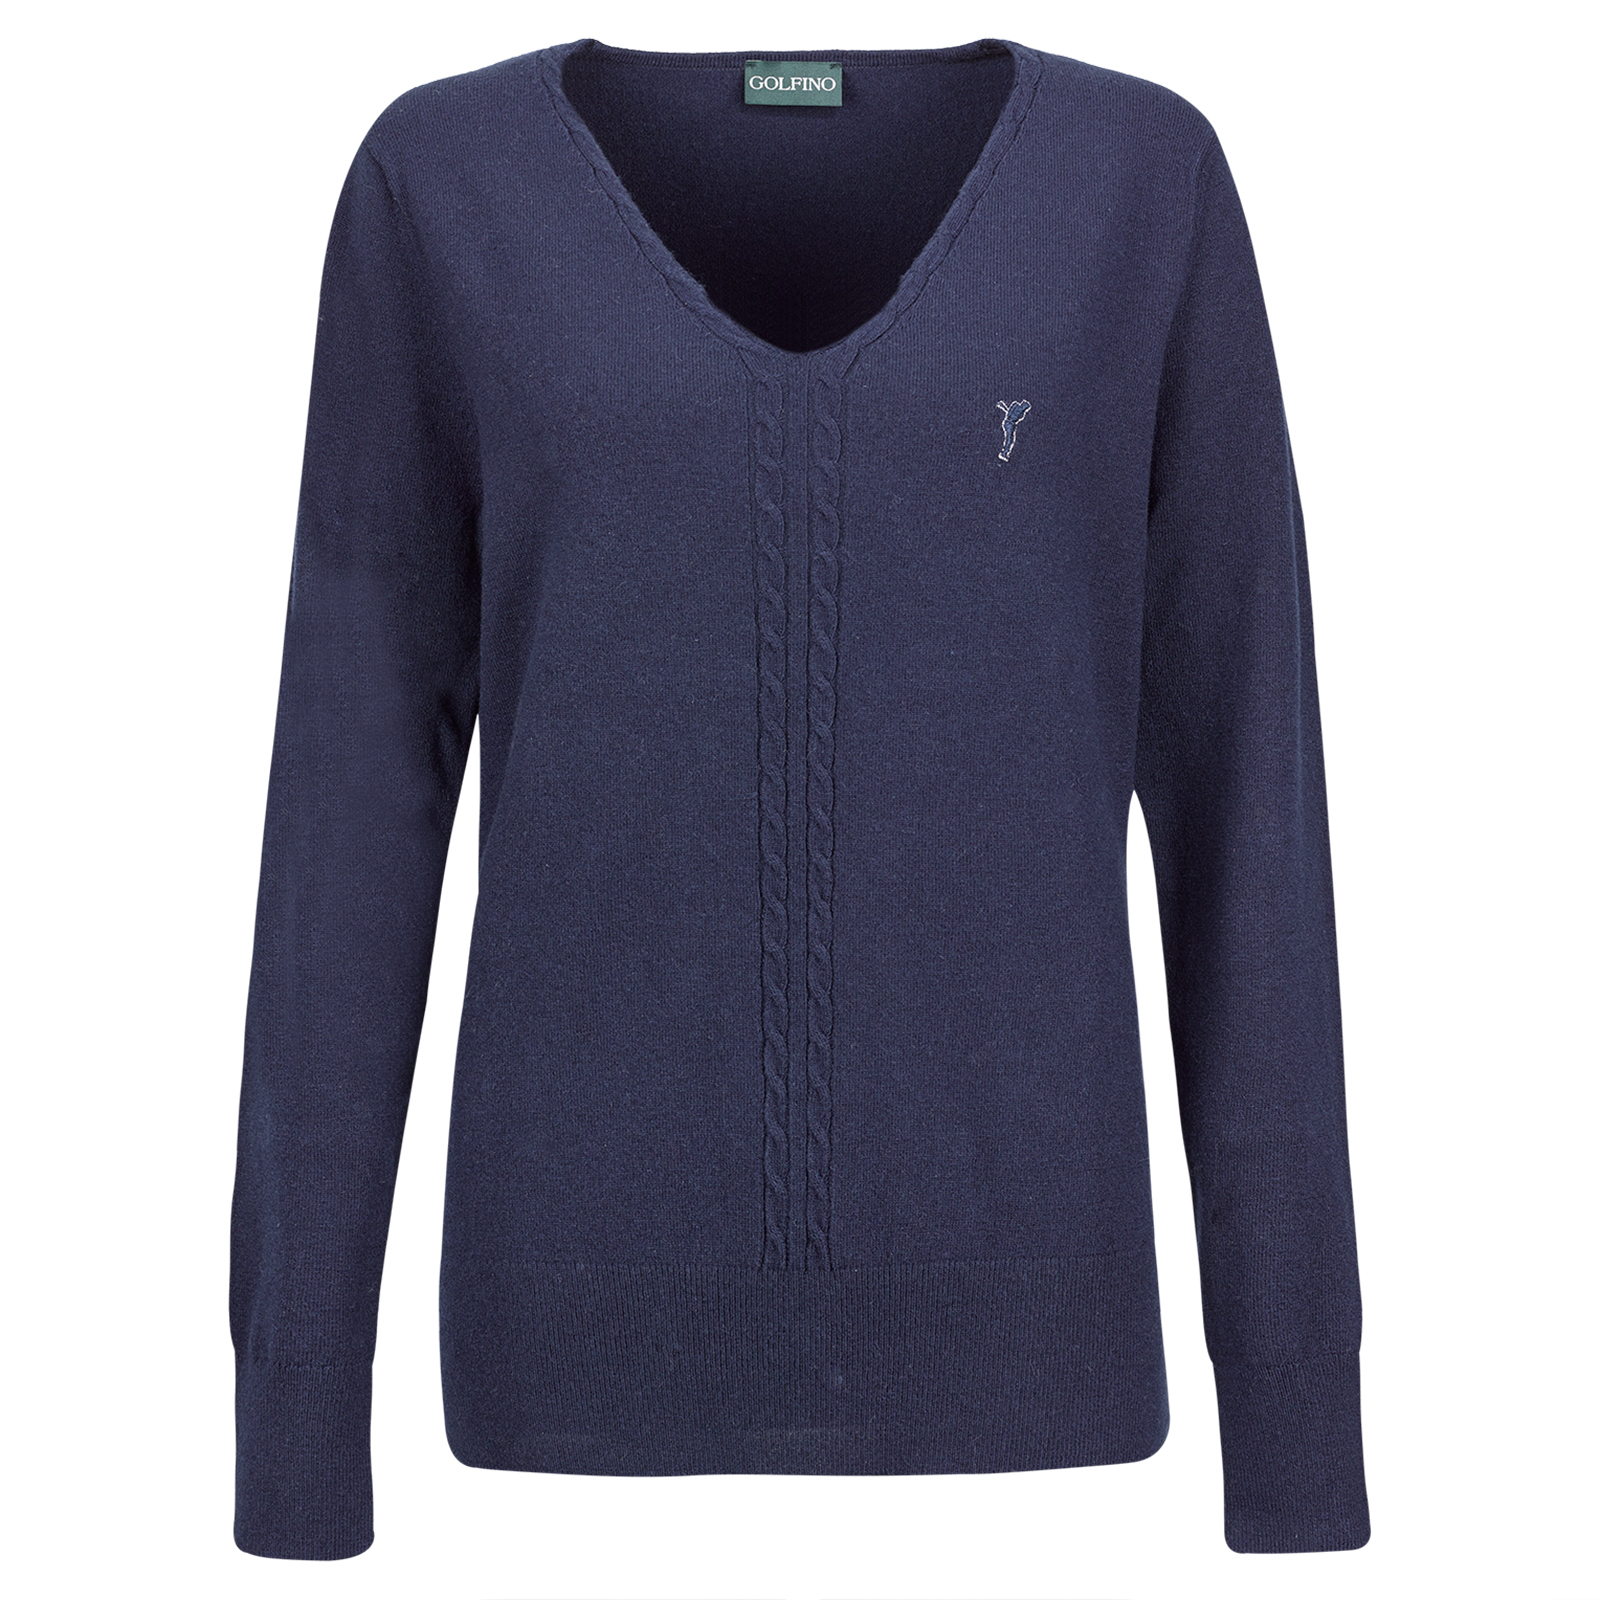 Ladies' cable-knit cotton/wool V-neck pullover with Cold Protection